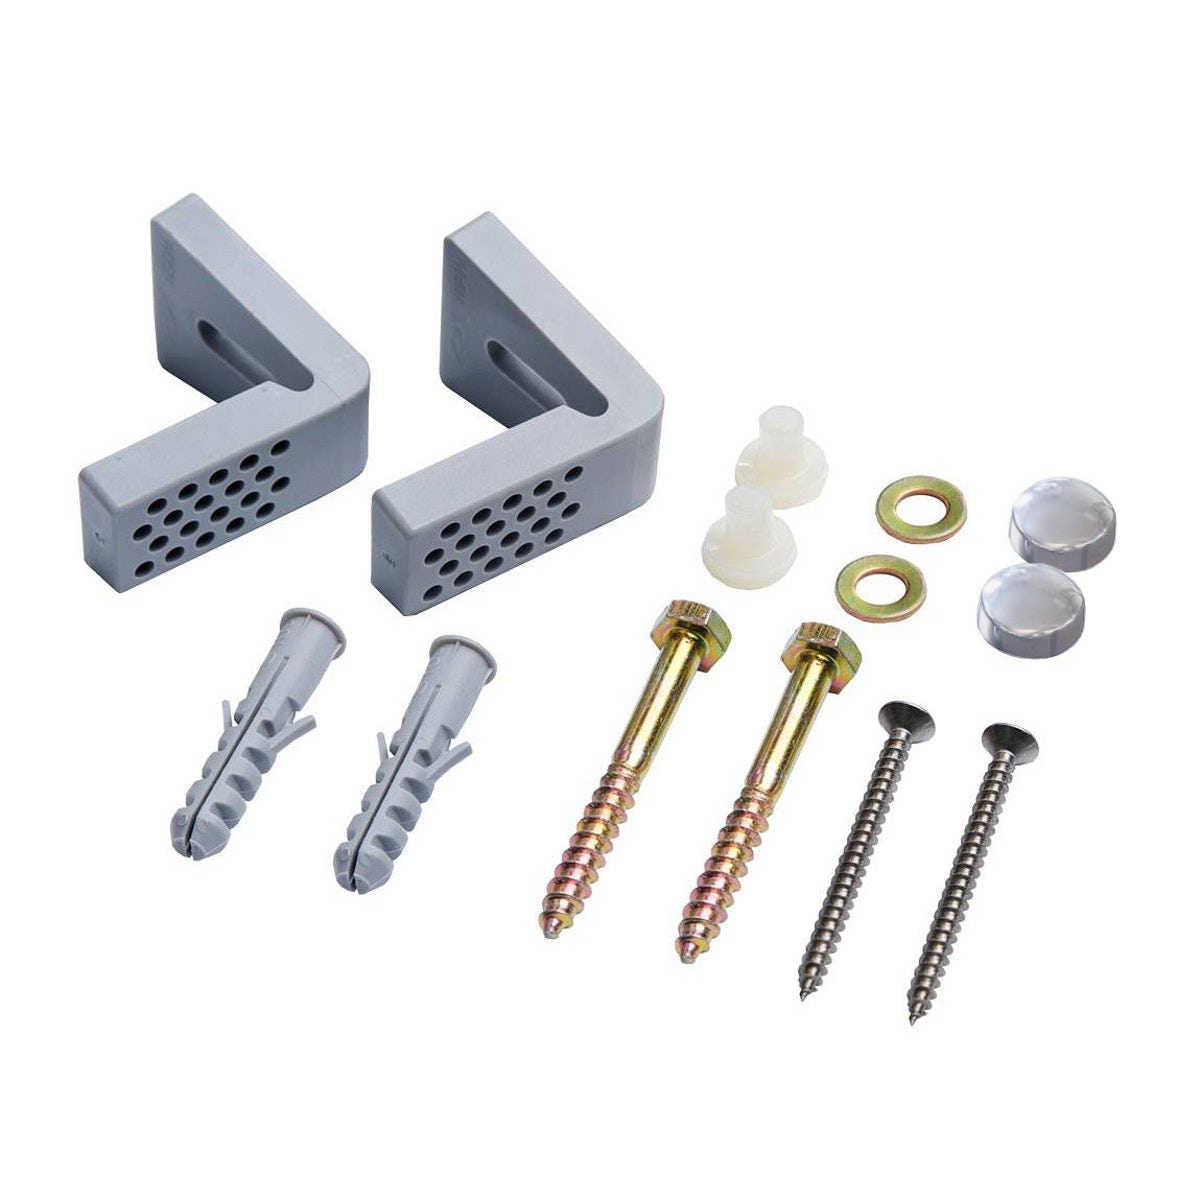 Universal Floor Fixing Kit